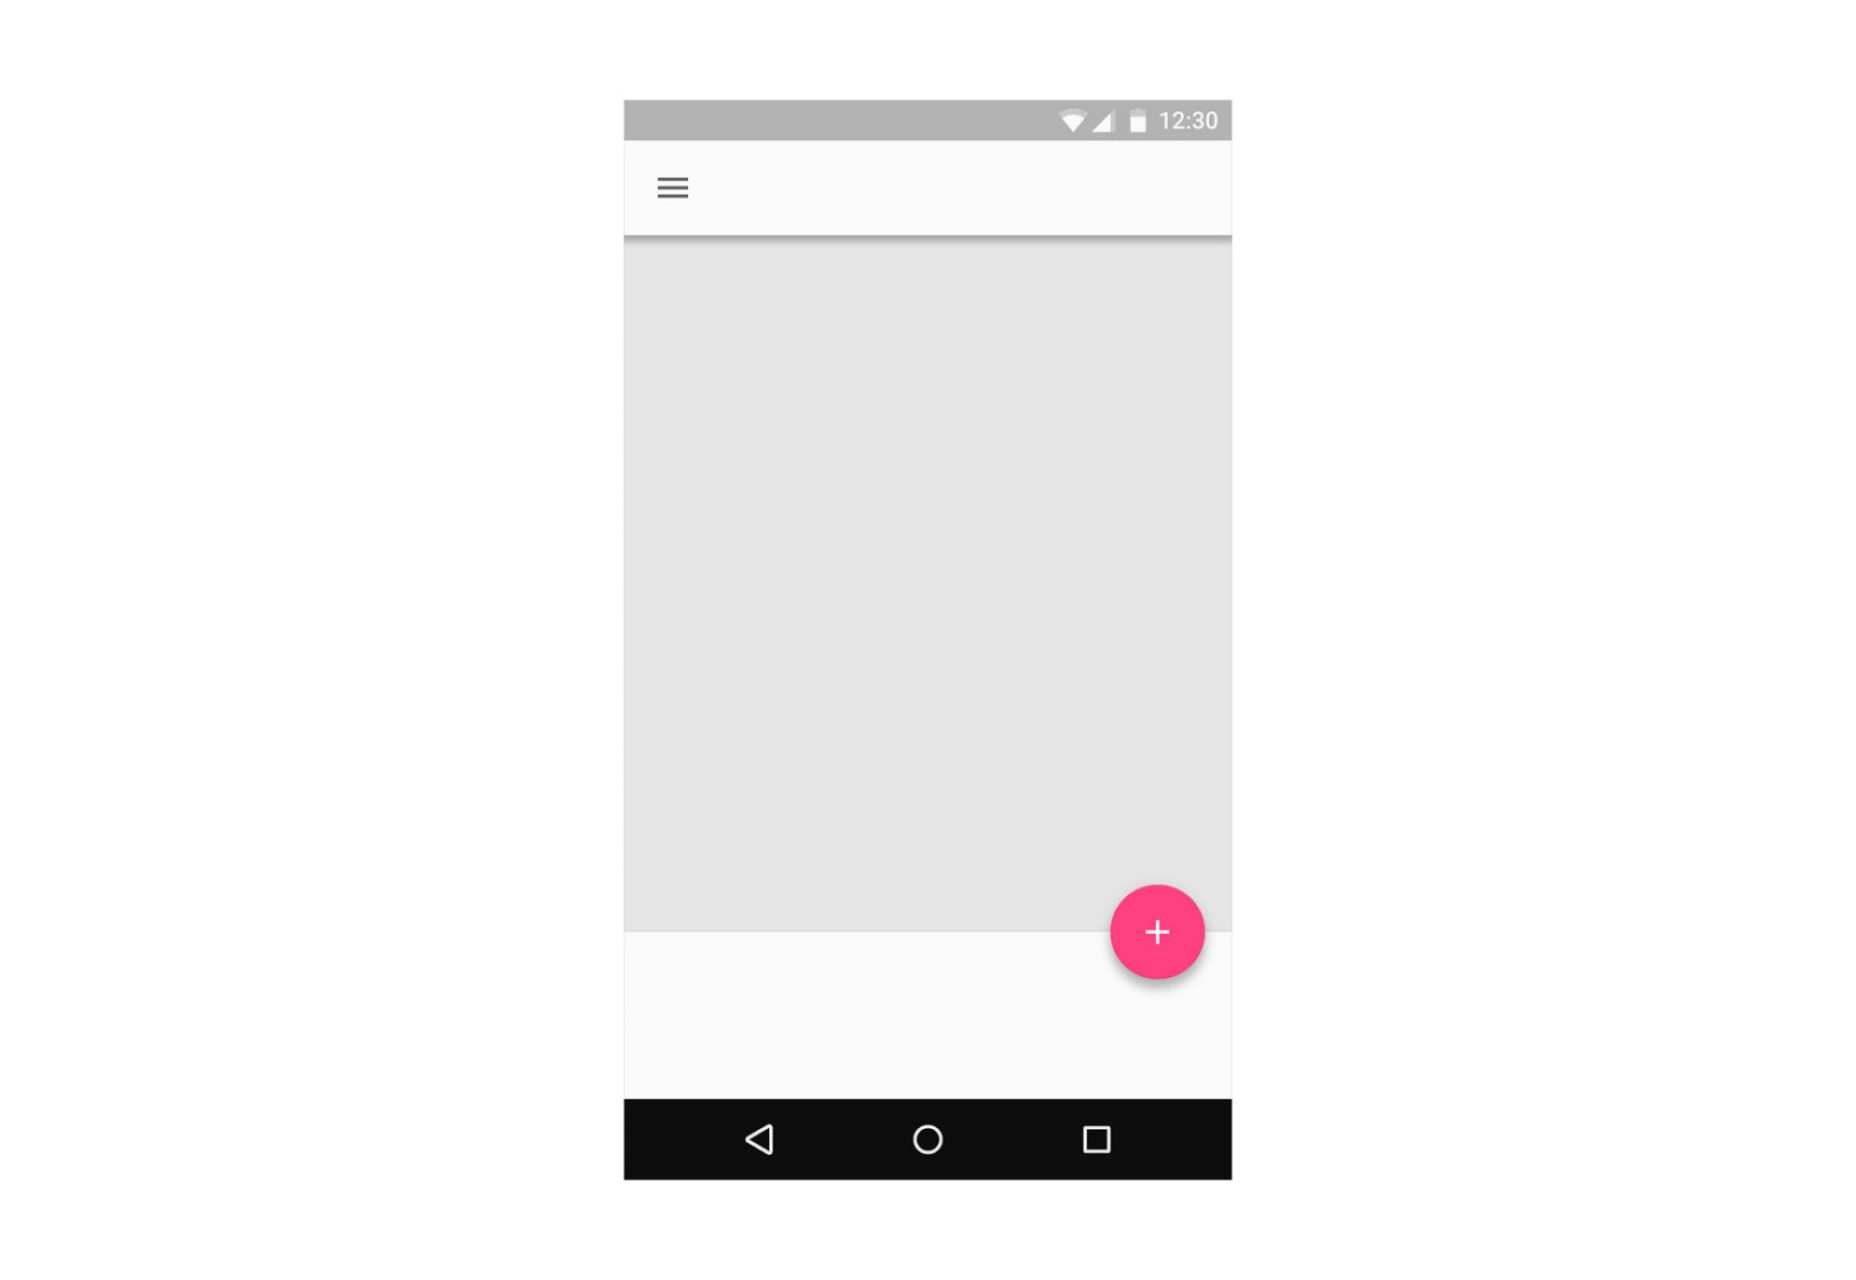 Floating Action Button in Android app